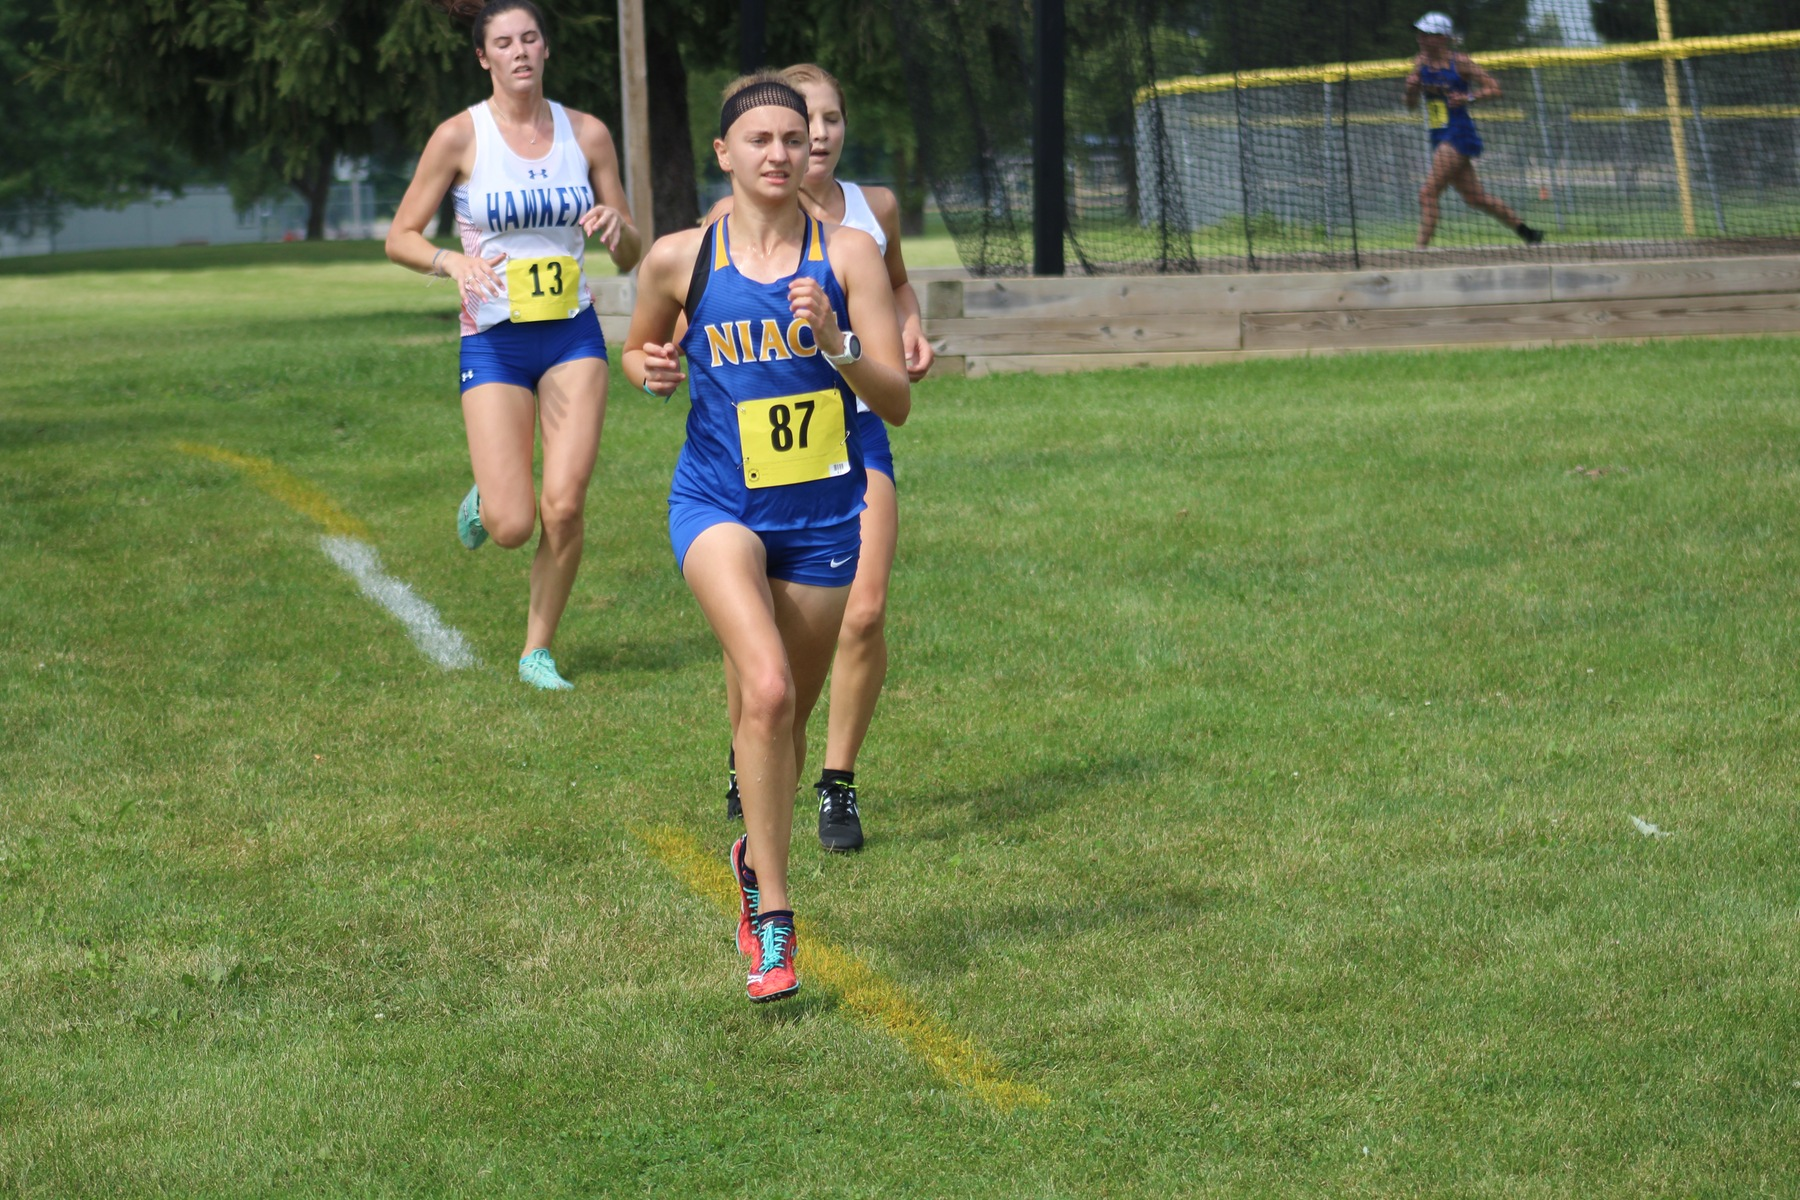 NIACC freshman Emma Davison runs to a seventh-place finish at the regional time trial on Saturday in Davenport.